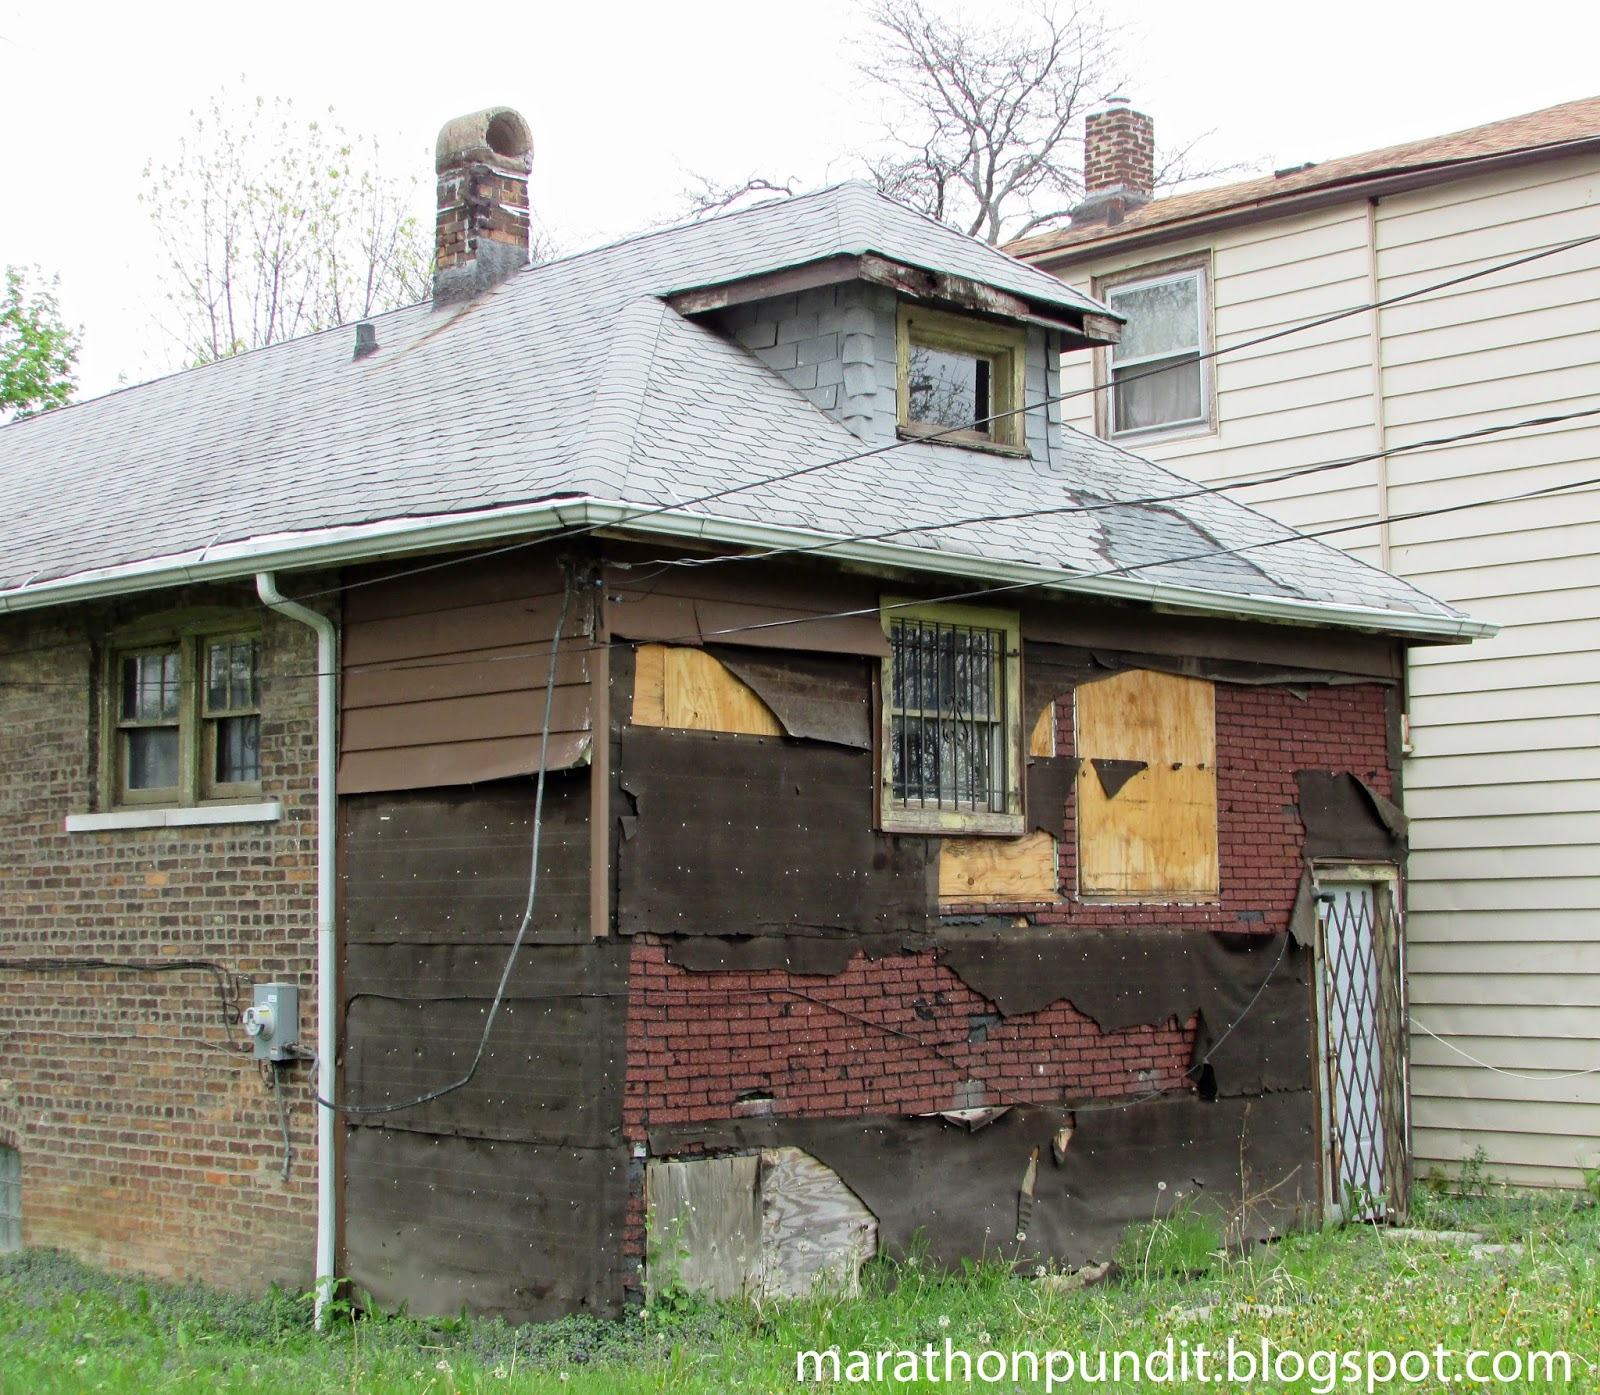 Three Brothers Bungalows: Marathon Pundit: (Photos) The Abandoned Homes Of Chicago's